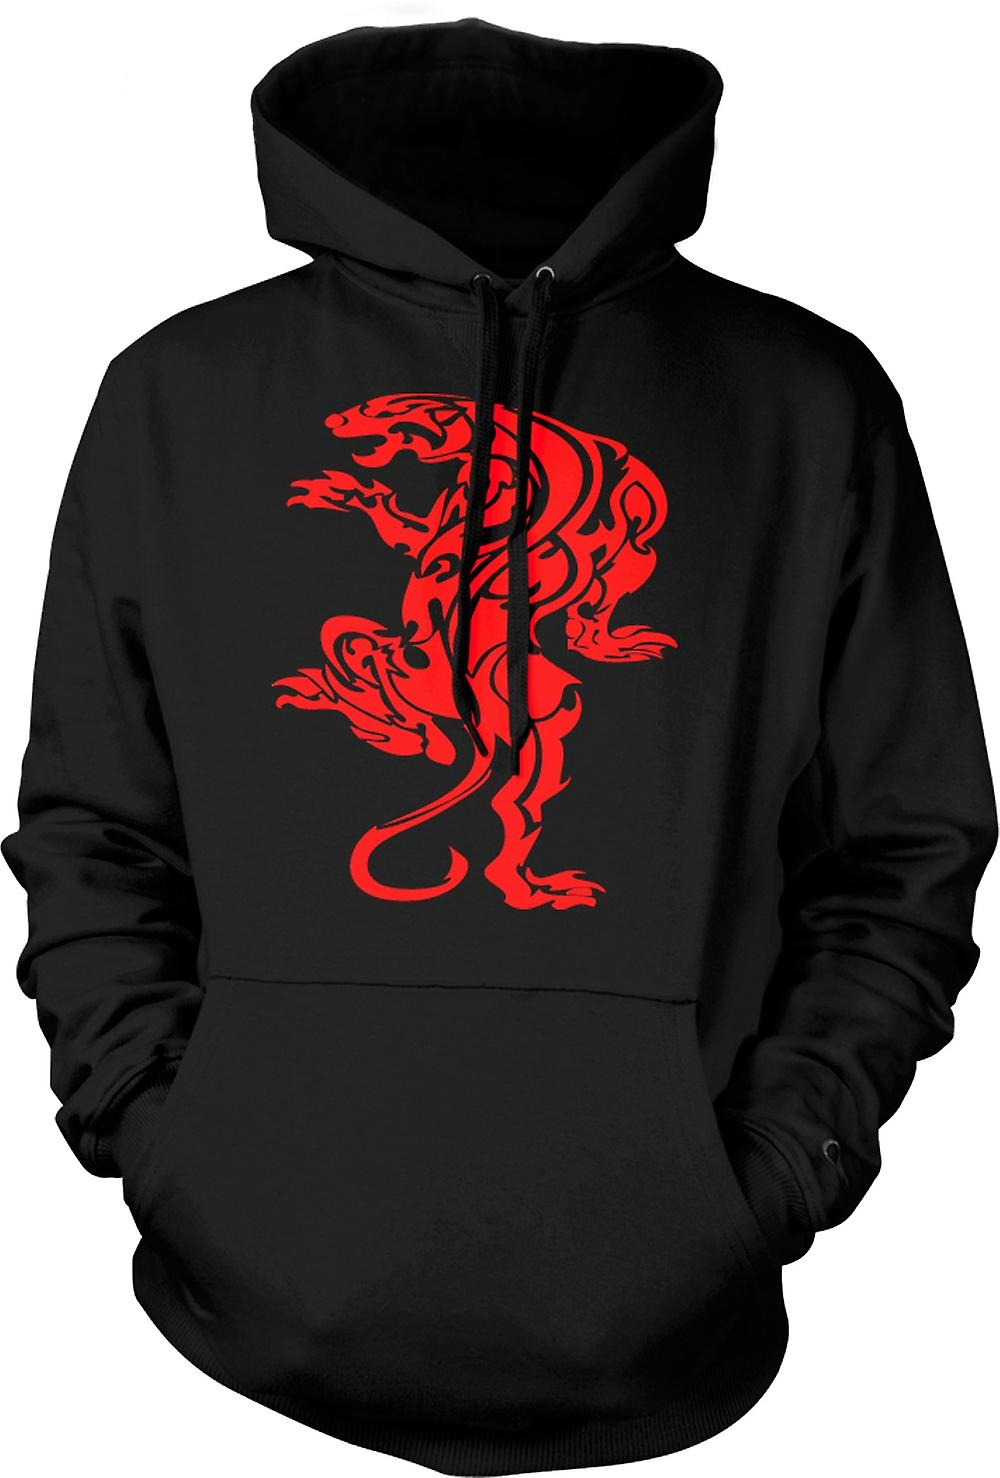 Mens Hoodie - tigre Tribal Art Design